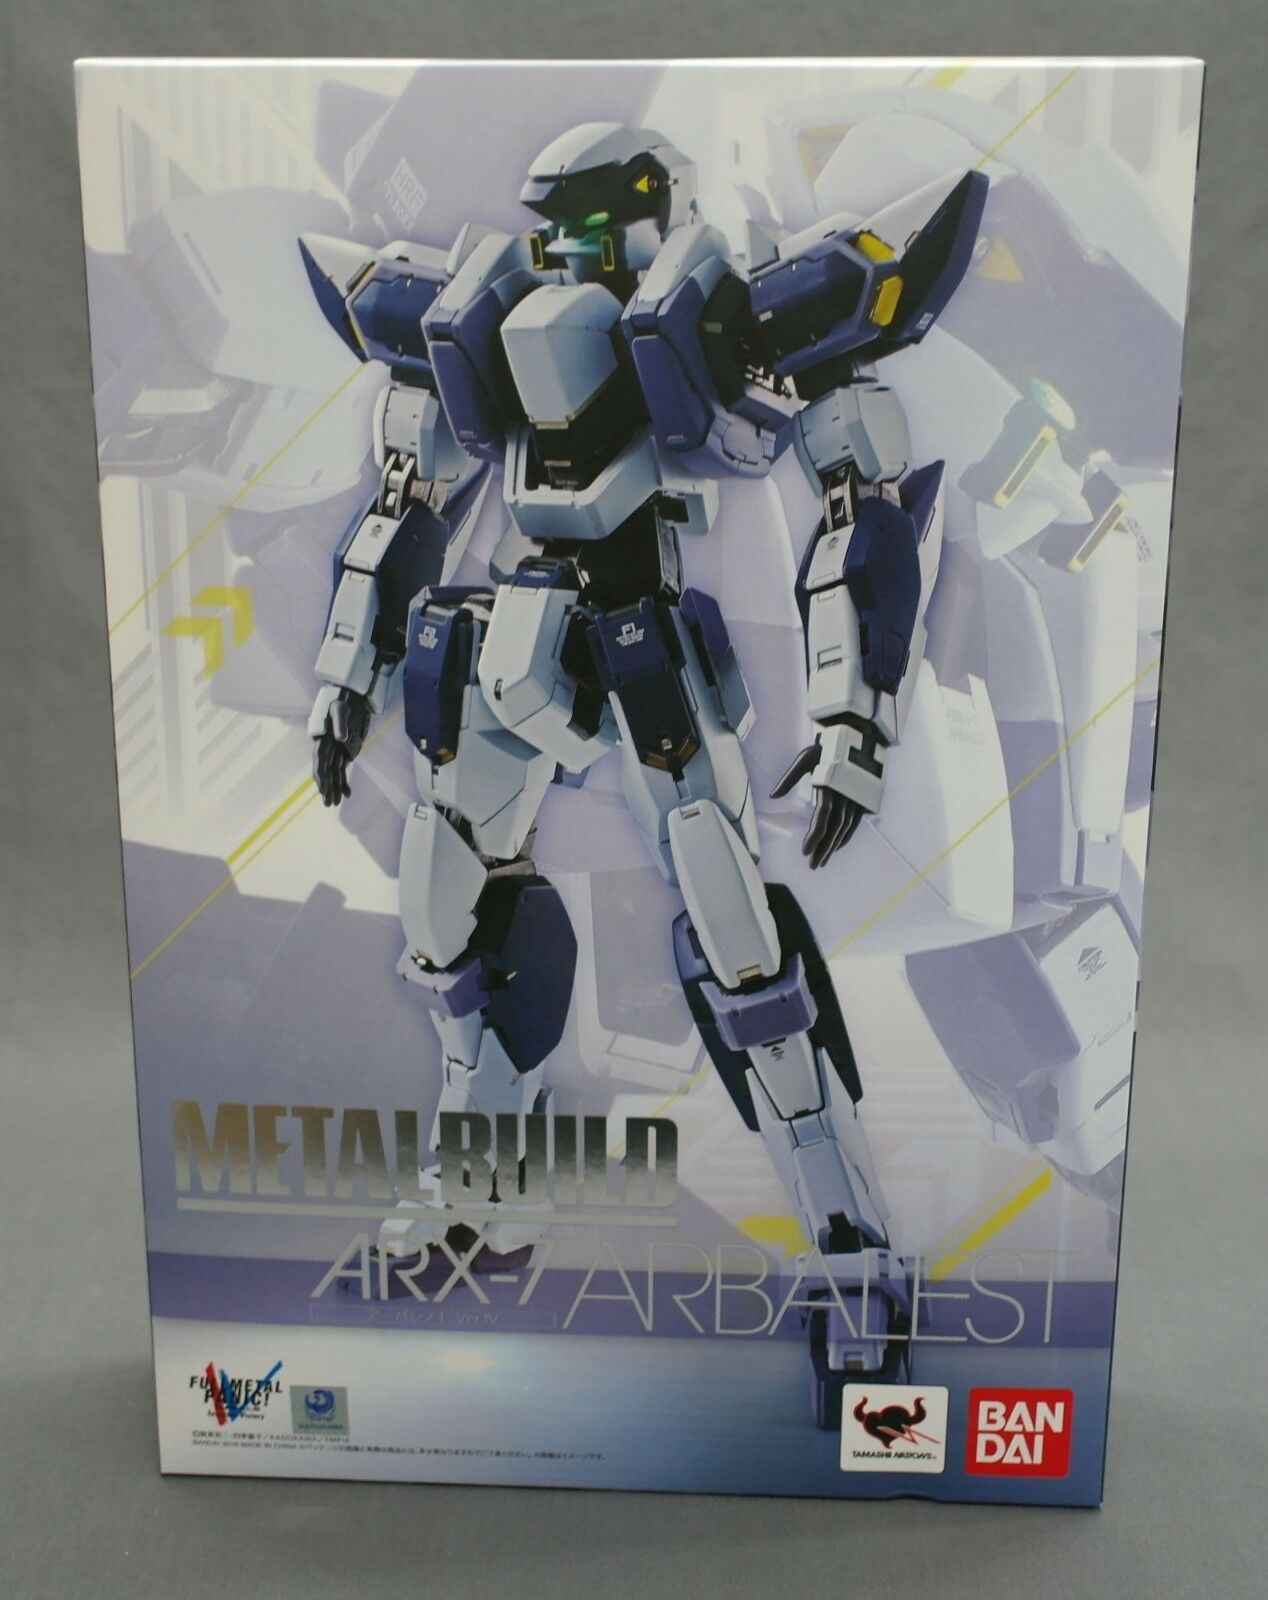 METAL BUILD Arbalest Ver.IV Full Metal Panic  Invisible Victory Bandai Japan NEW